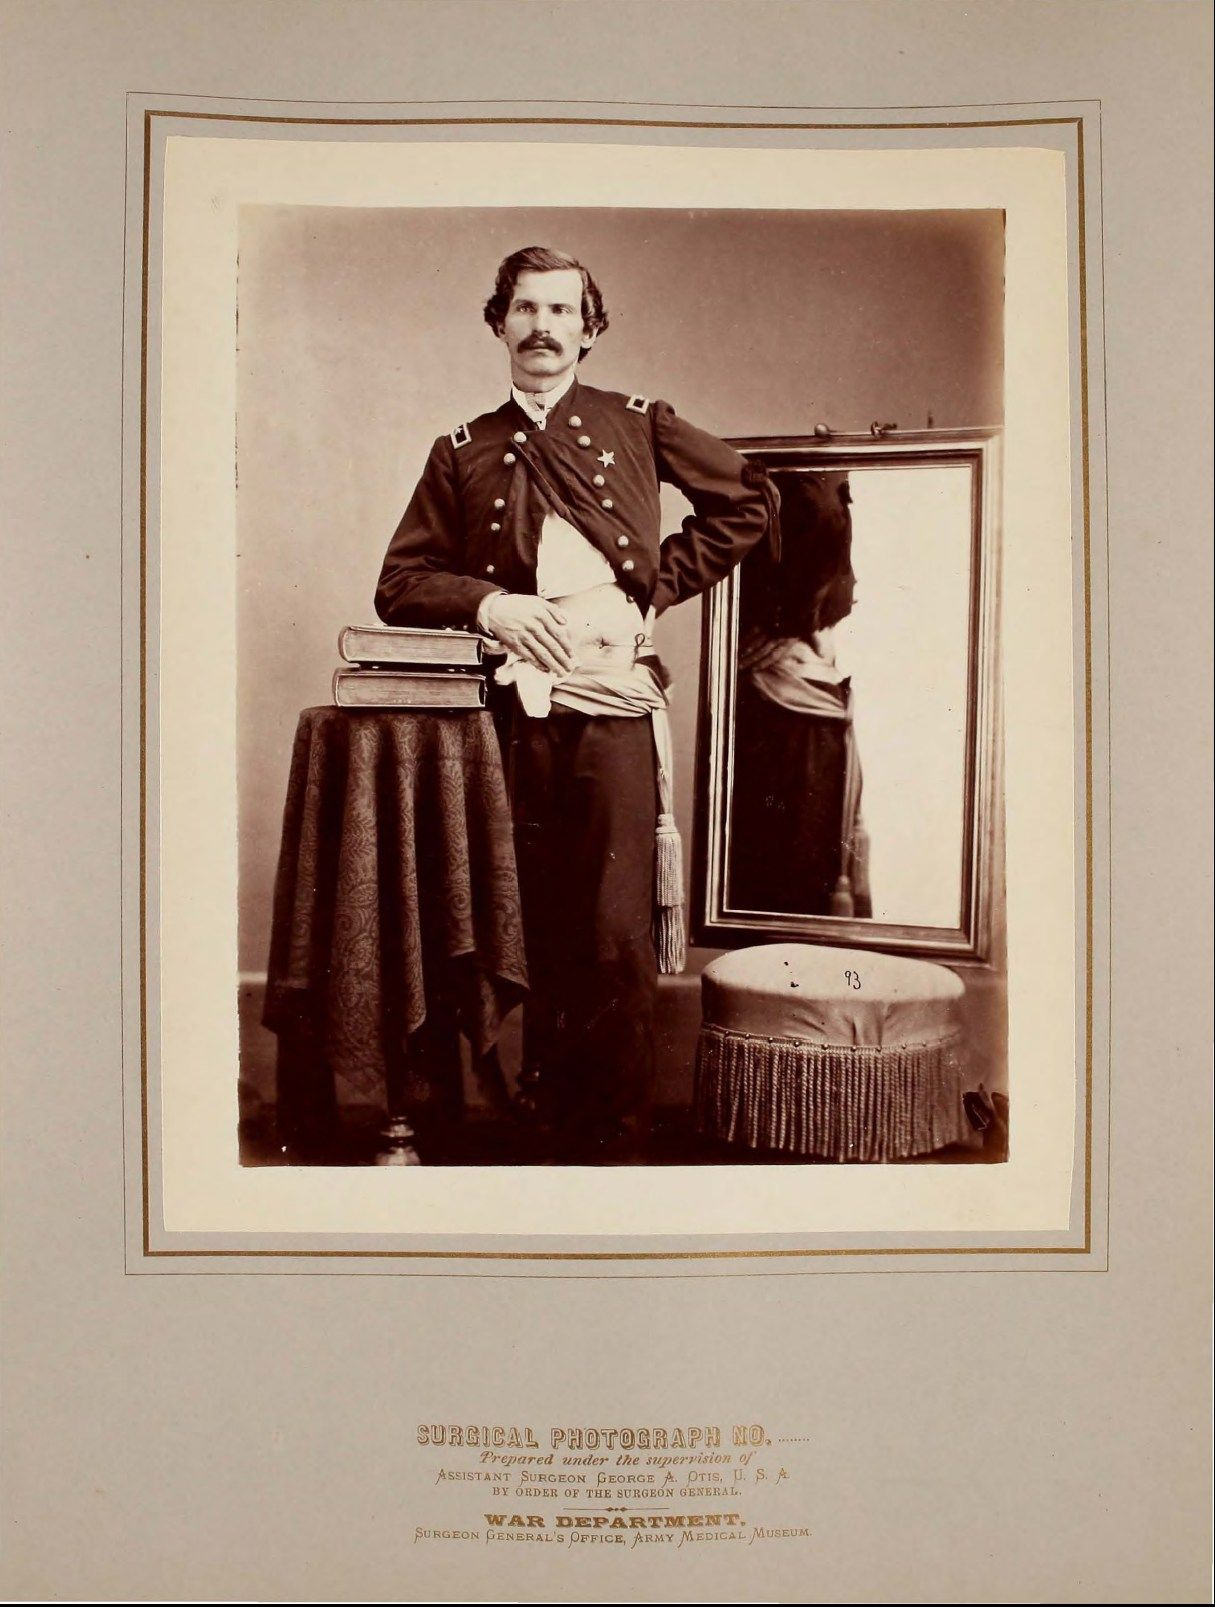 Civil War: U.S. Surgeon General Photographs and Histories of Surgical Cases and Specimens